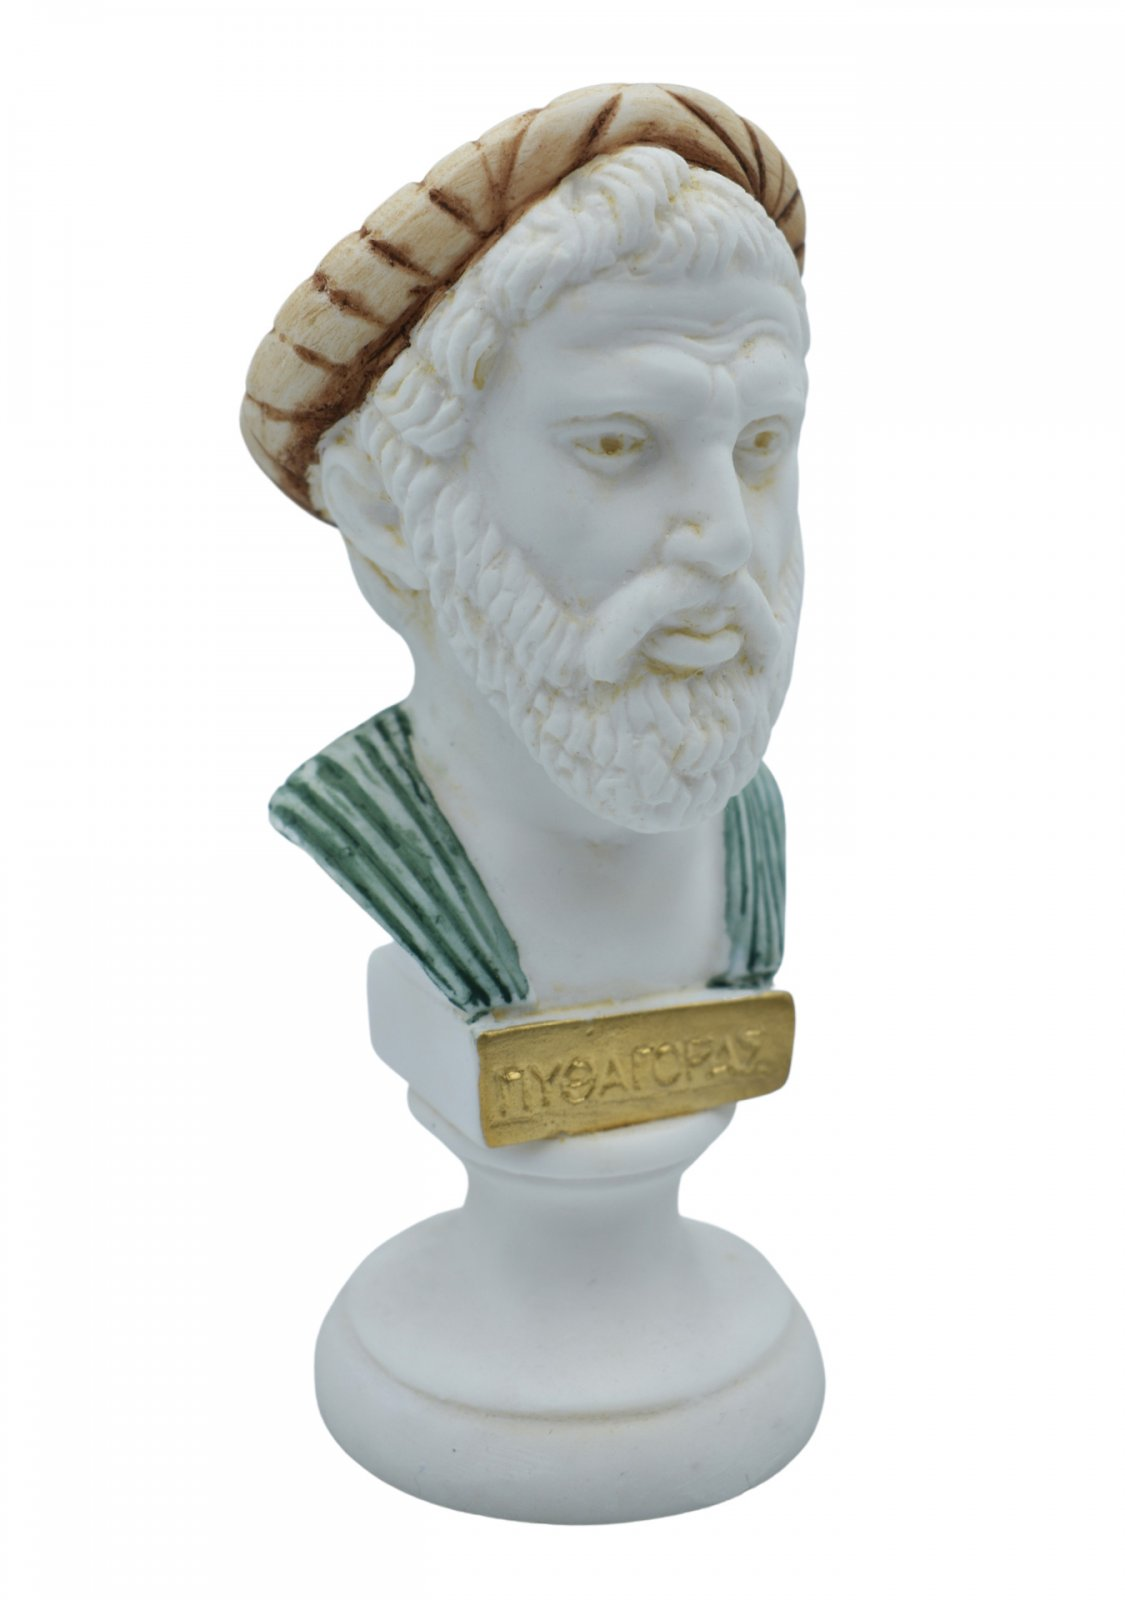 Pythagoras alabaster bust statue with color